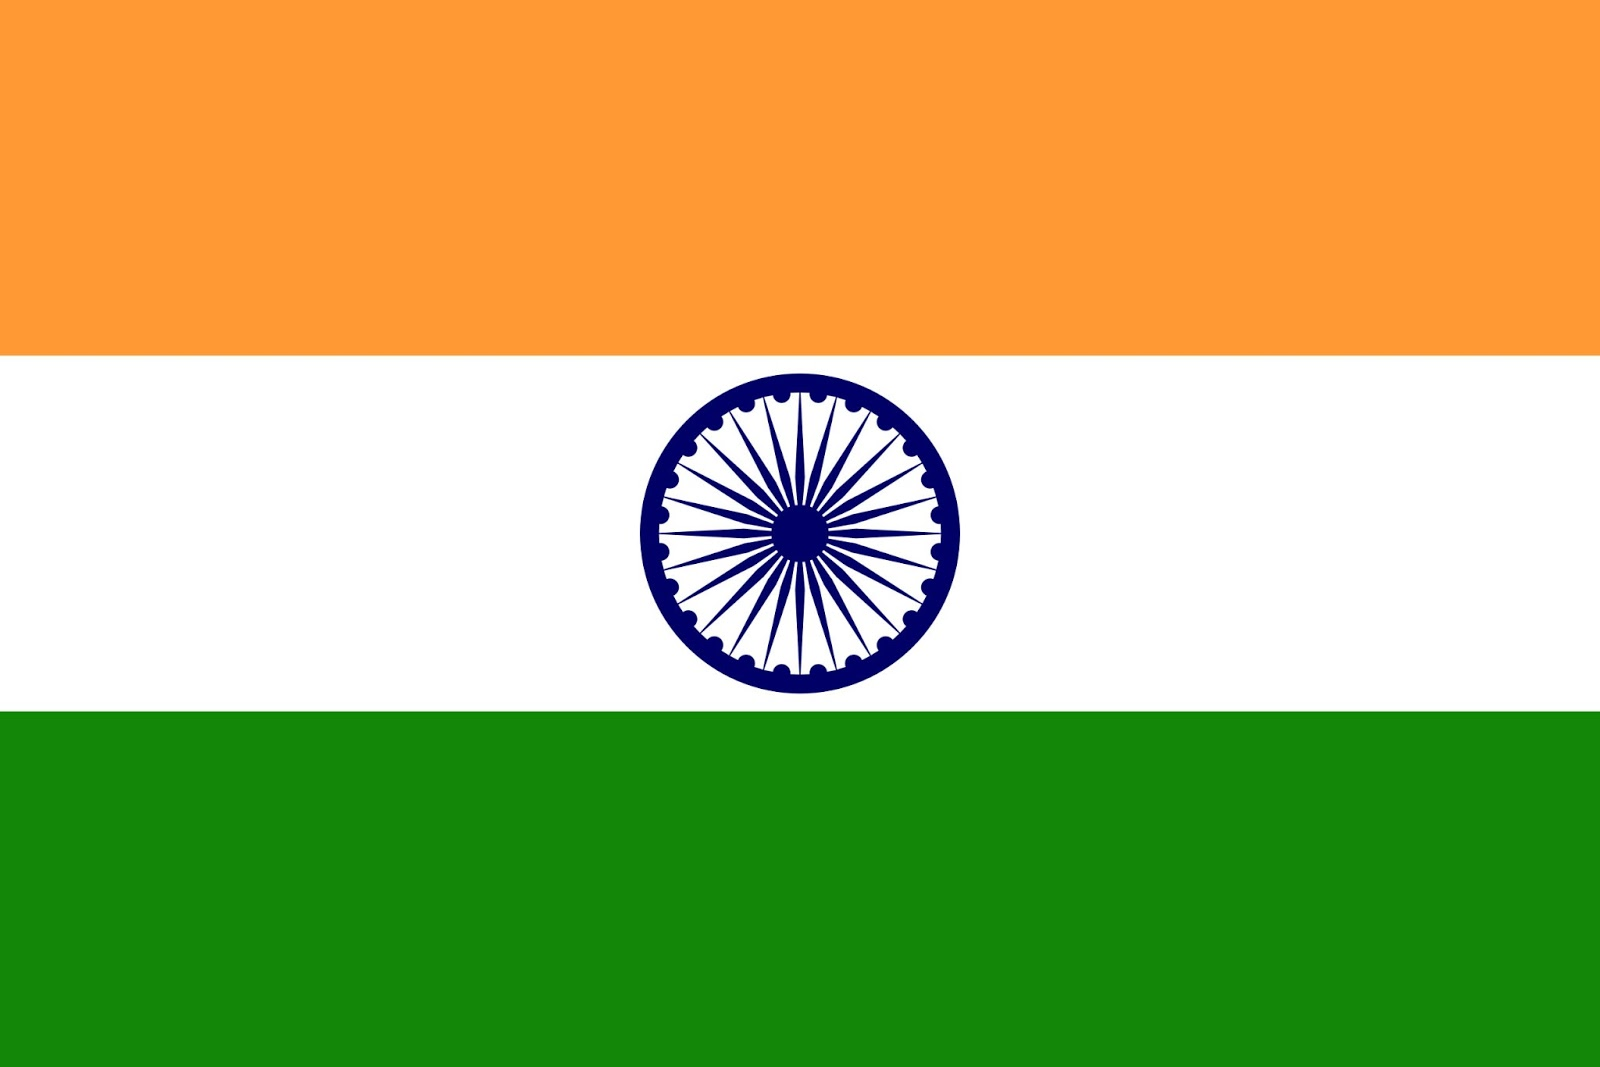 I Love Indian Flag Hd Wallpapers For Desktop Pc Background Free Download New Latest Different Amazing Animated Simple Map Images